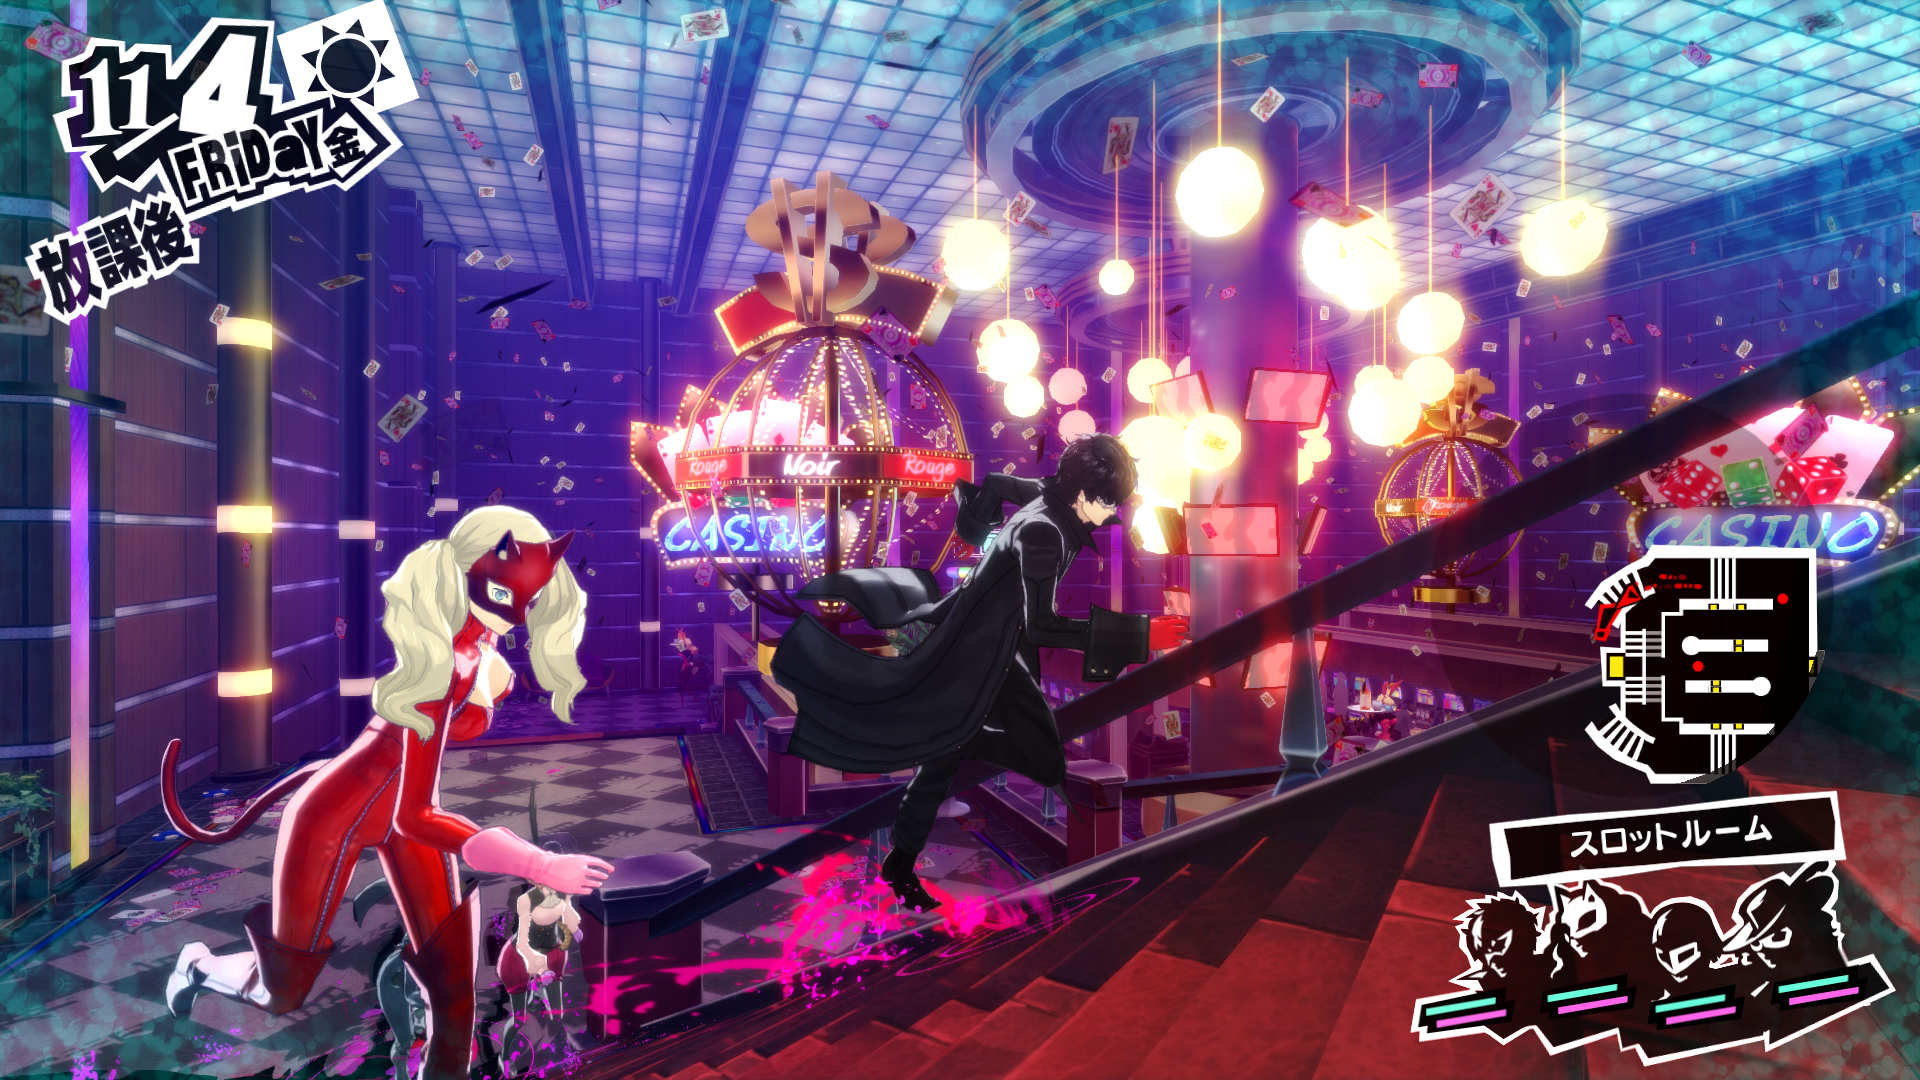 Today's Best Game Deals: Persona 5 $20 or less, GTA V Premium Online Edition $20, more